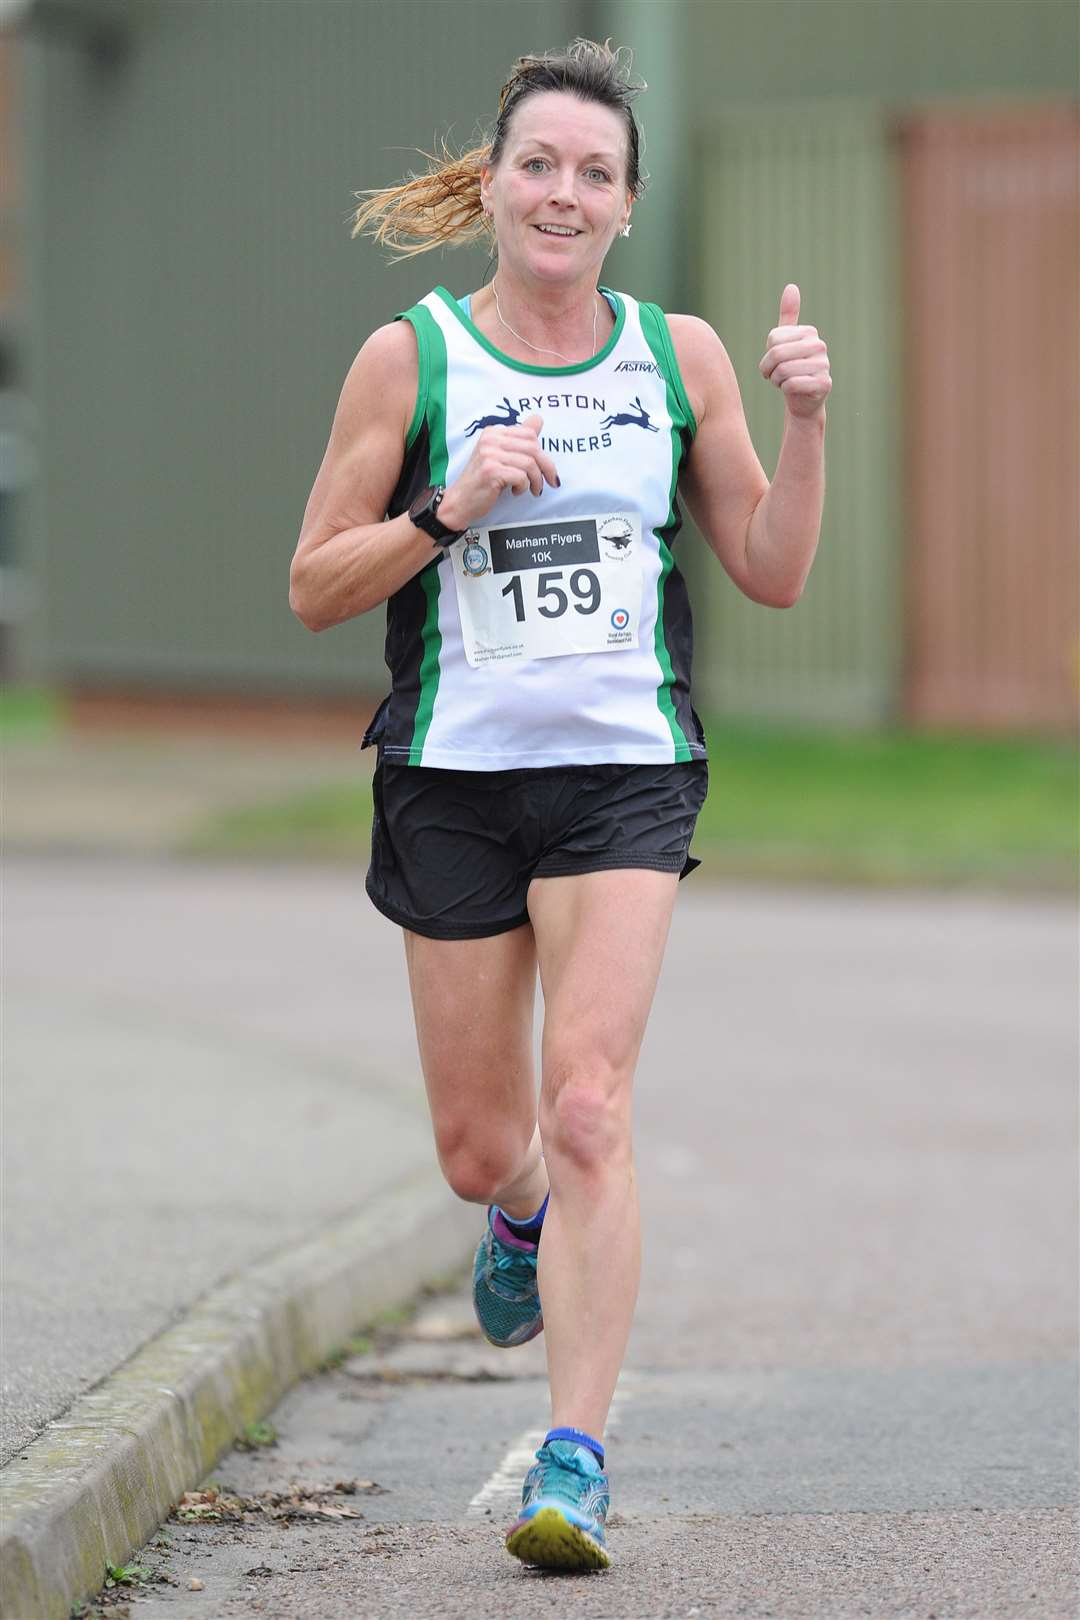 Lesley Robins in action at the Marham Flyers New Year's Eve 10k race. Picture: TIM SMITH